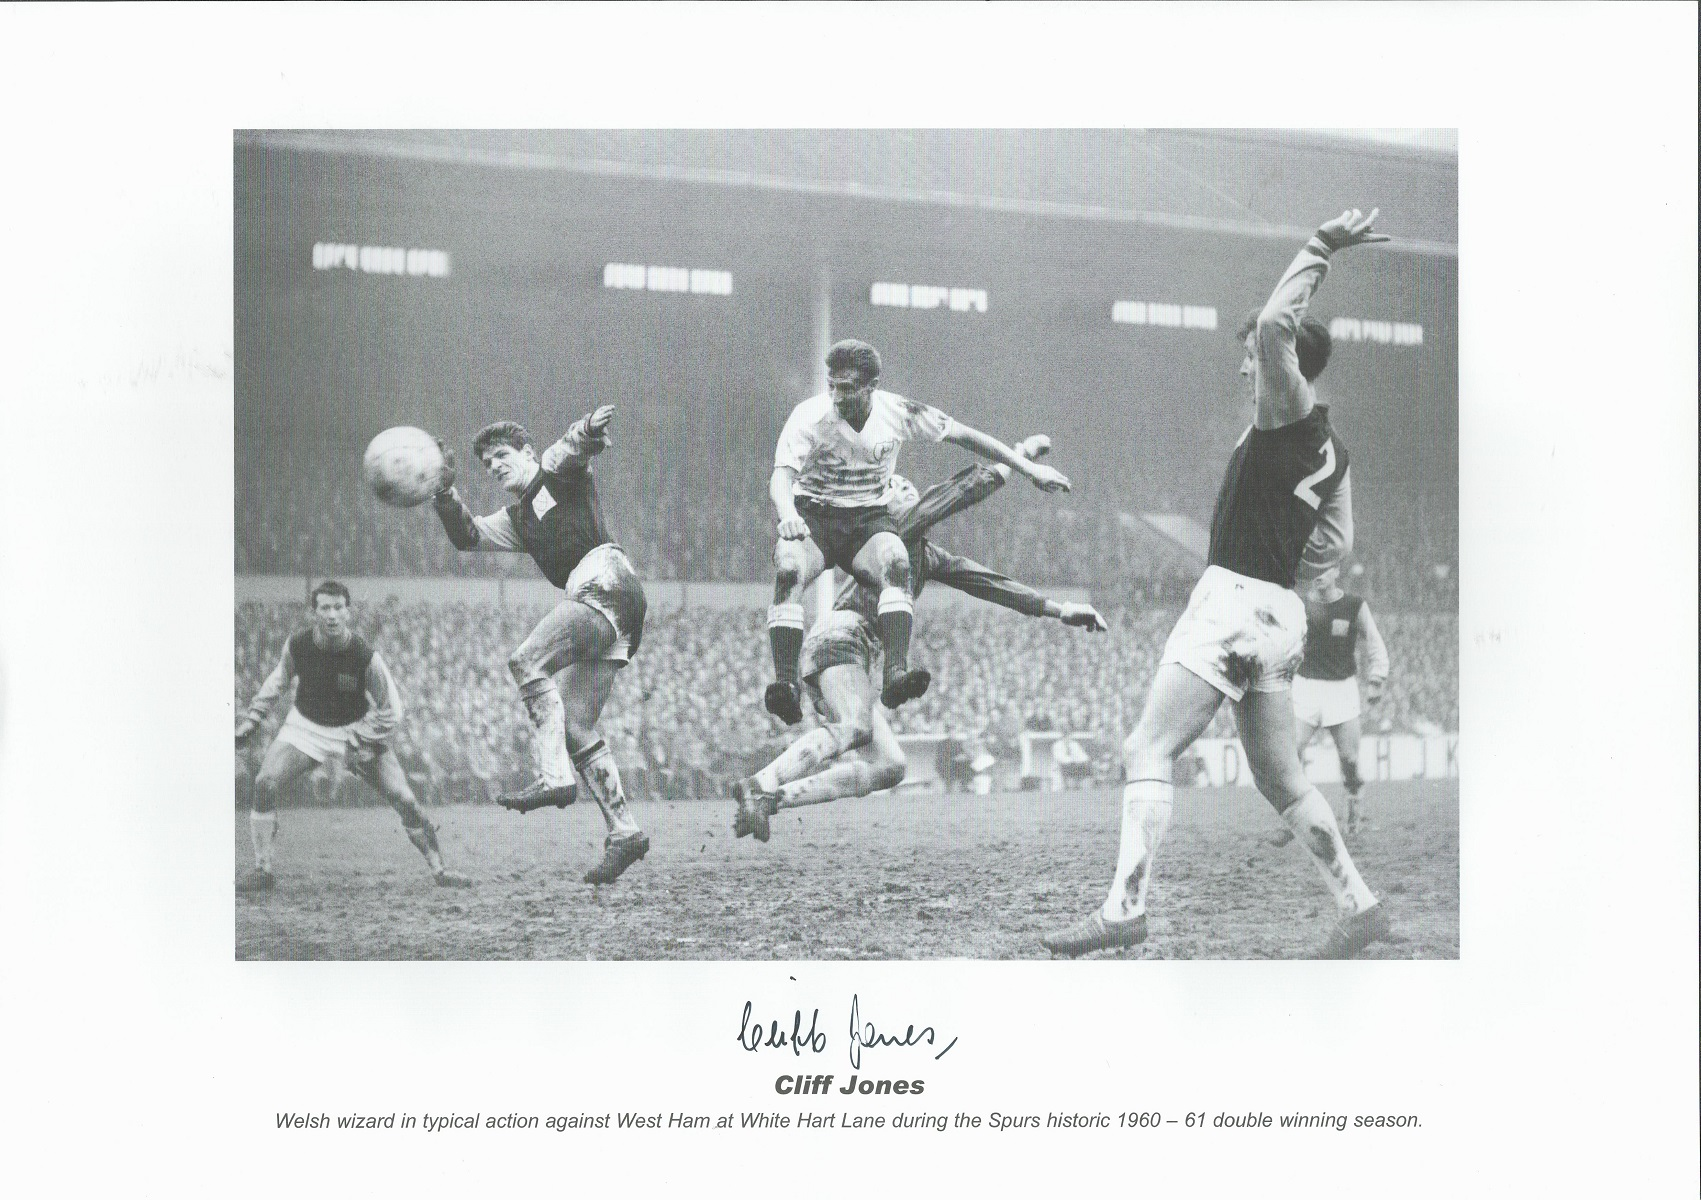 Cliff Jones signed 16x12 black and white print. Welsh wizard in typical action against West Ham at